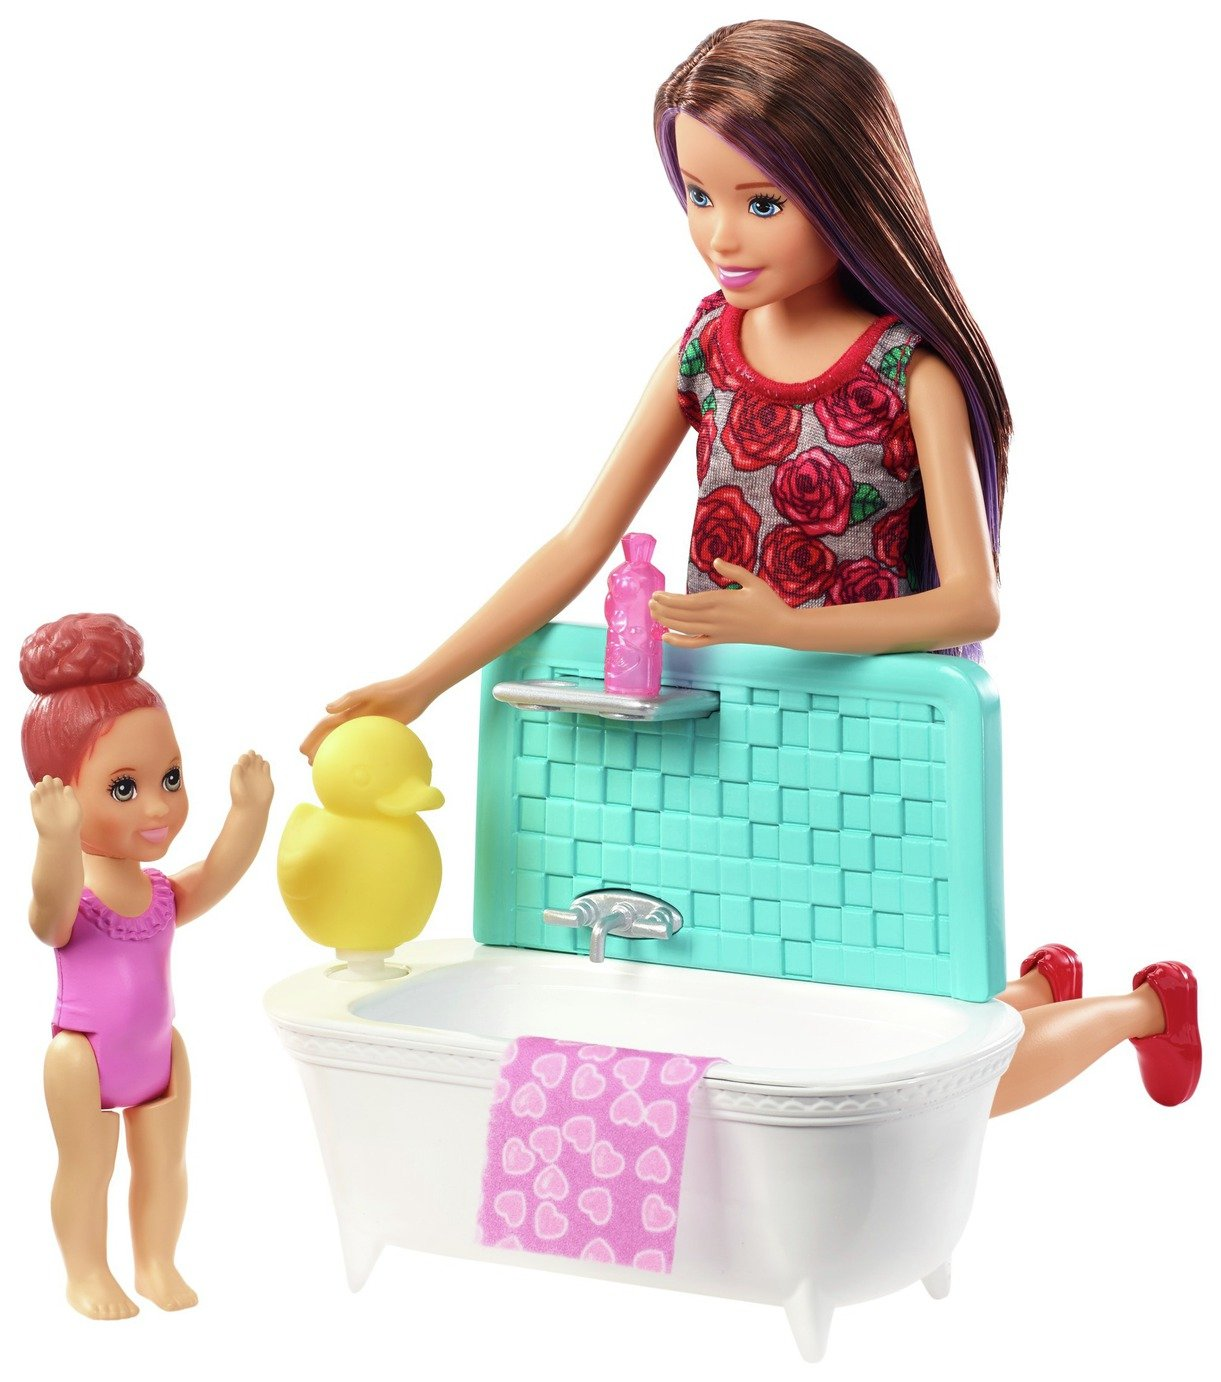 Barbie Bathtime Fun